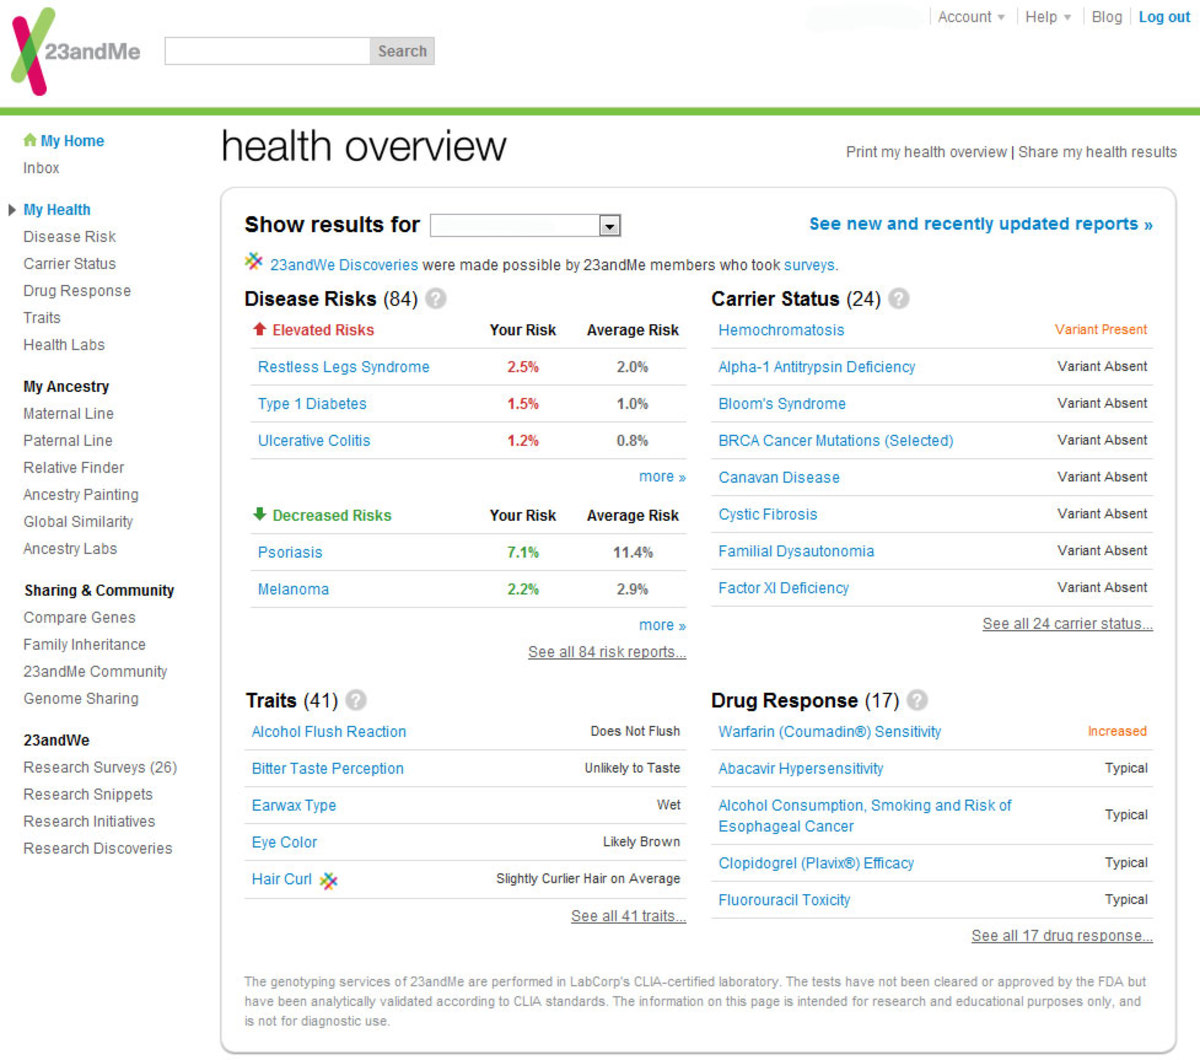 The Health Overview page highlights your disease risks, carrier status for certain conditions, drug sensitivities, and other interesting health info like whether your ear wax is wet or dry